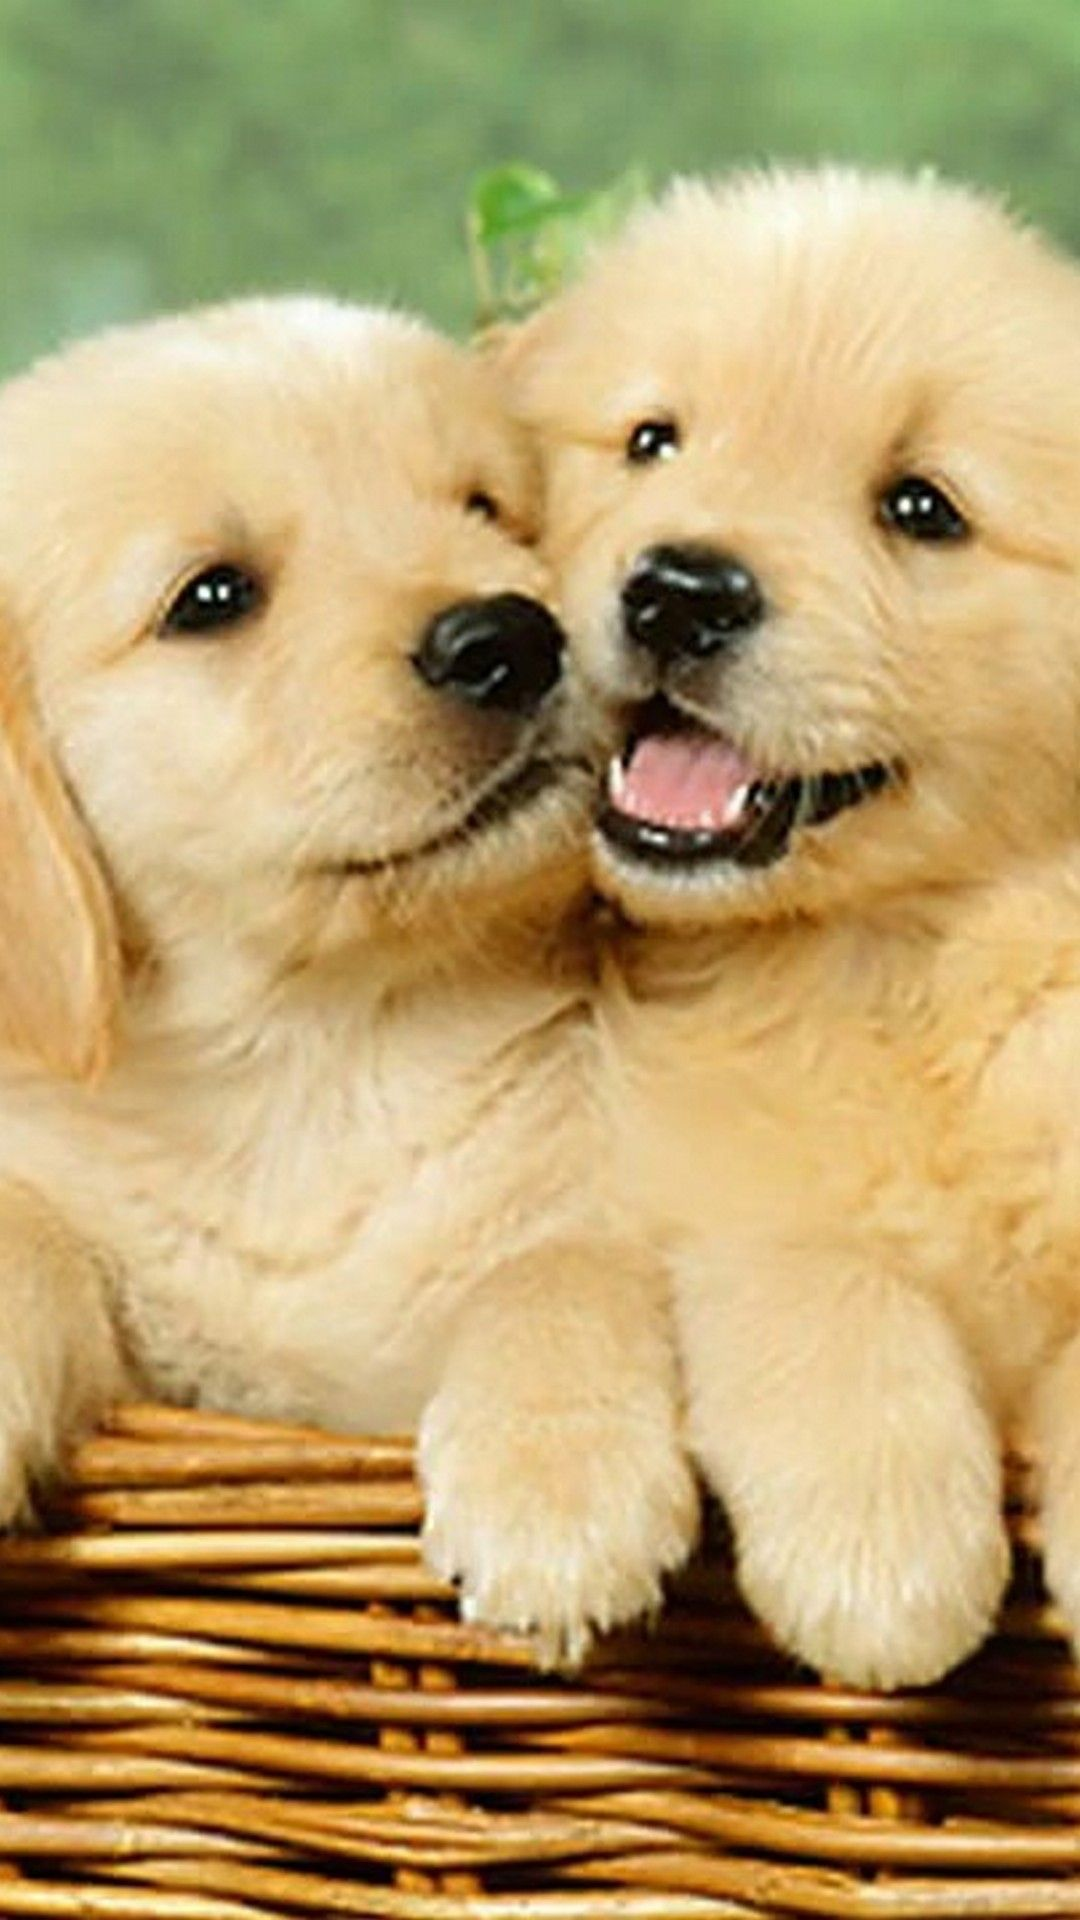 Wallpaper Of Puppys Posted By Samantha Tremblay